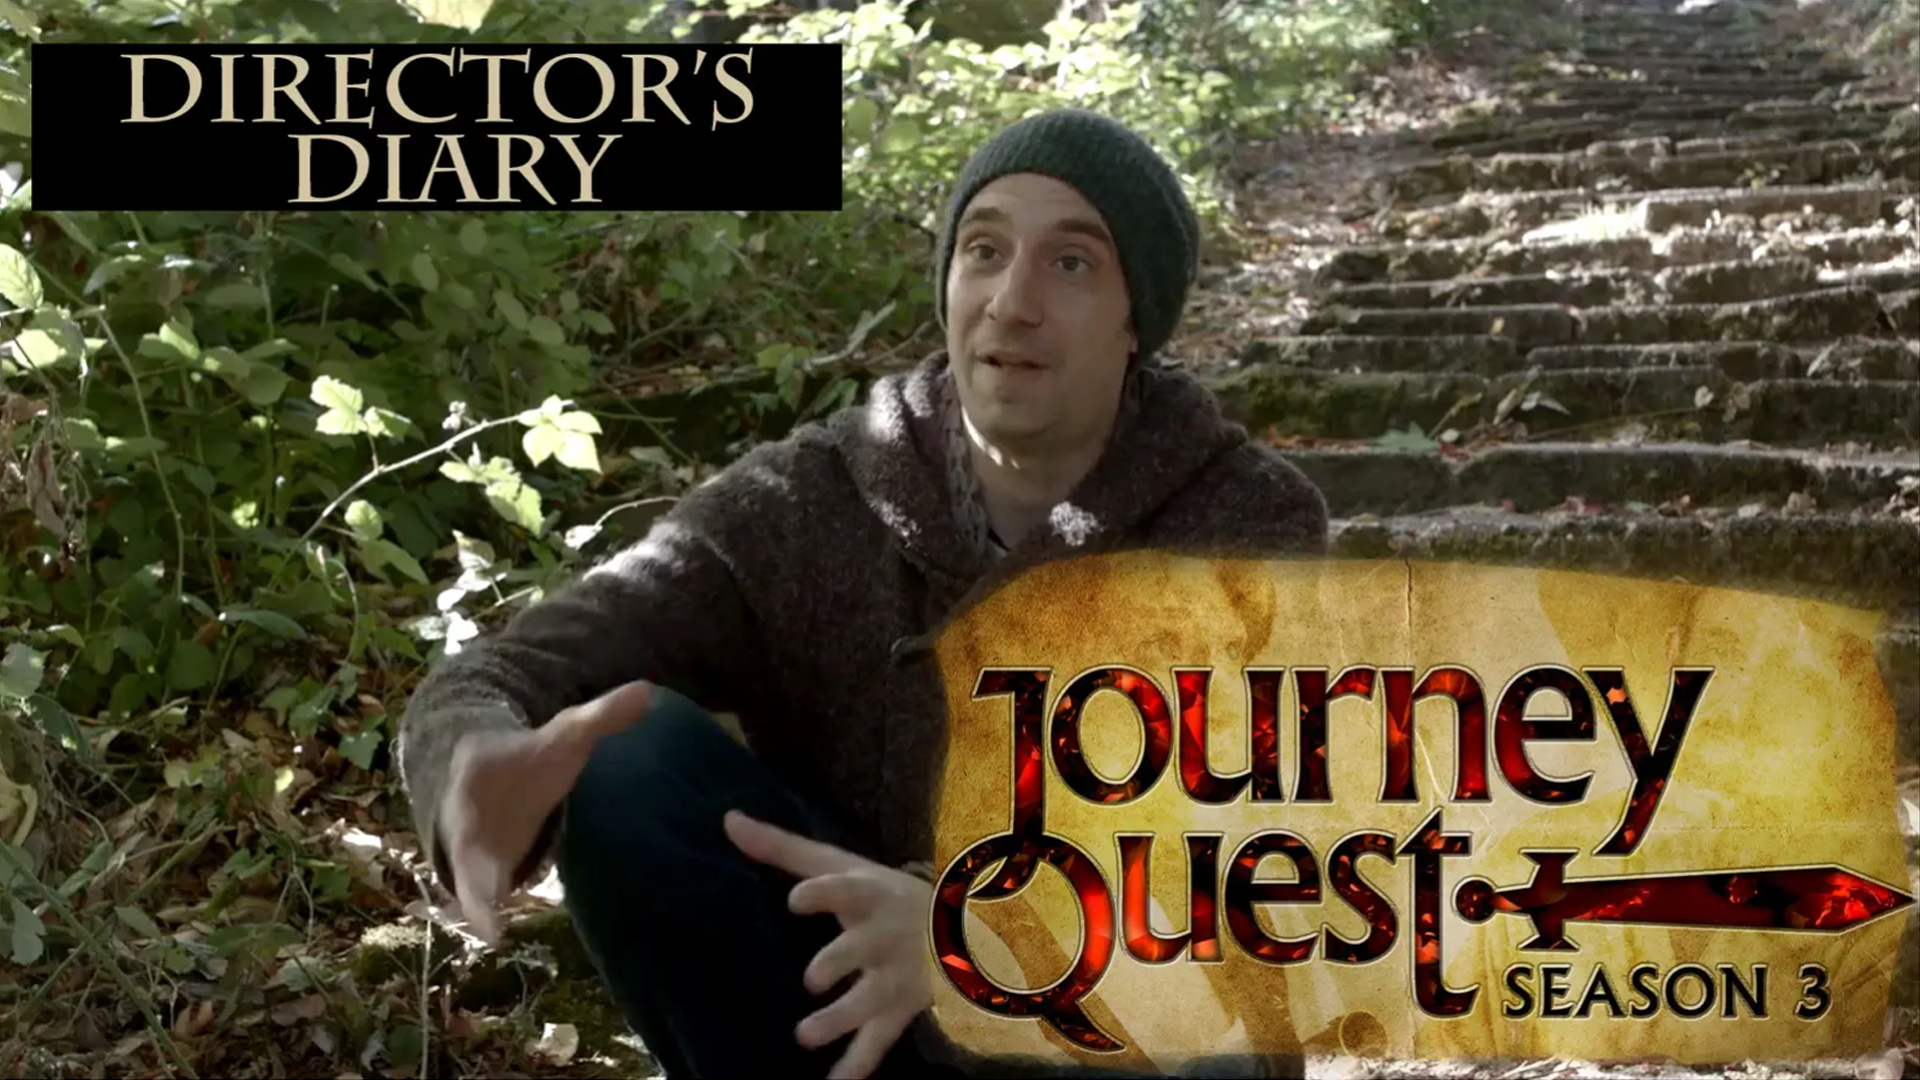 JourneyQuest 3 Director's Diary